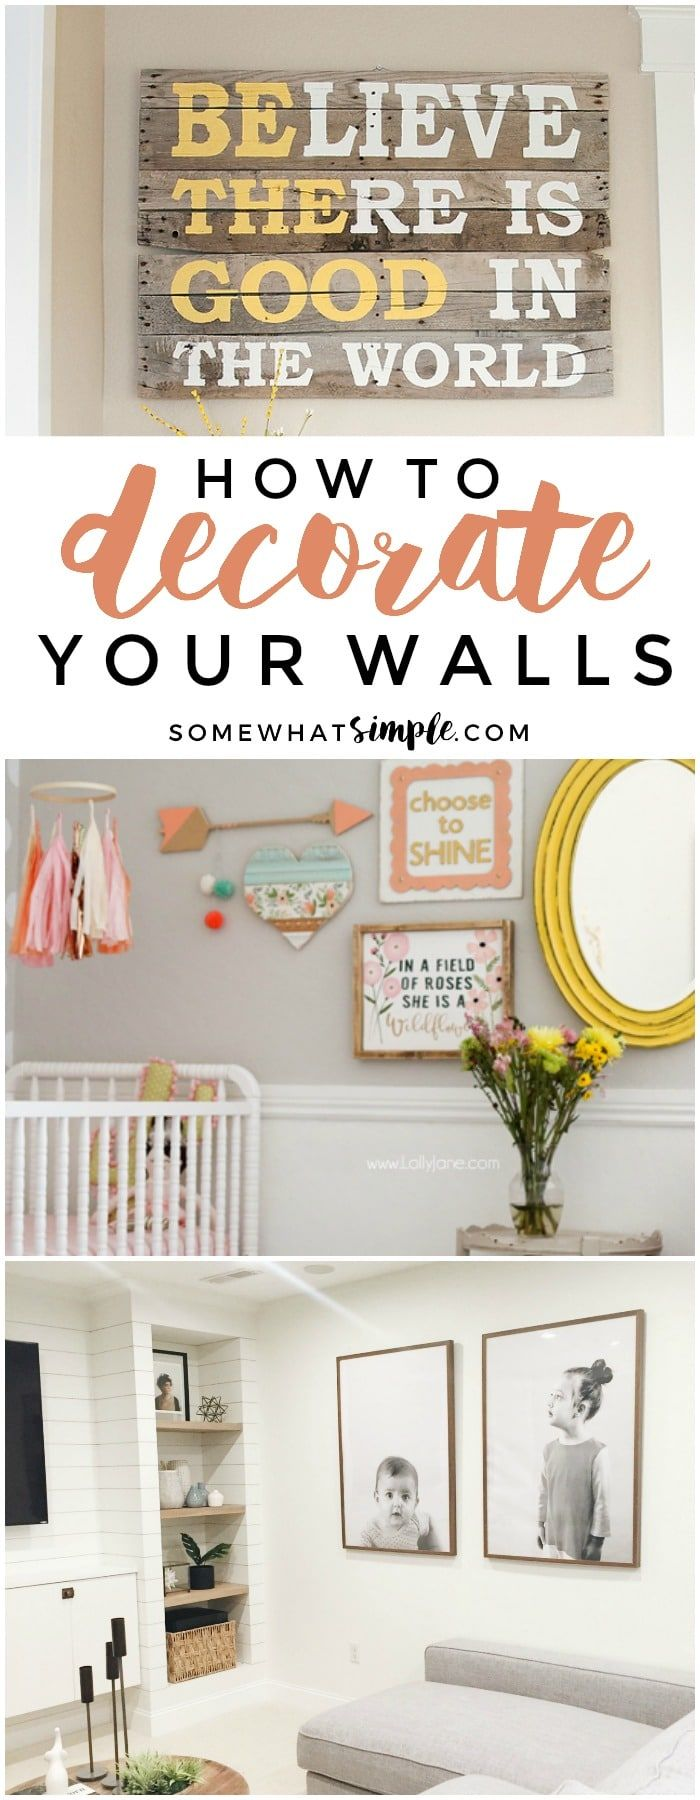 Today we're featuring some of our favorite wall decor ideas to help make your blank walls beautiful!